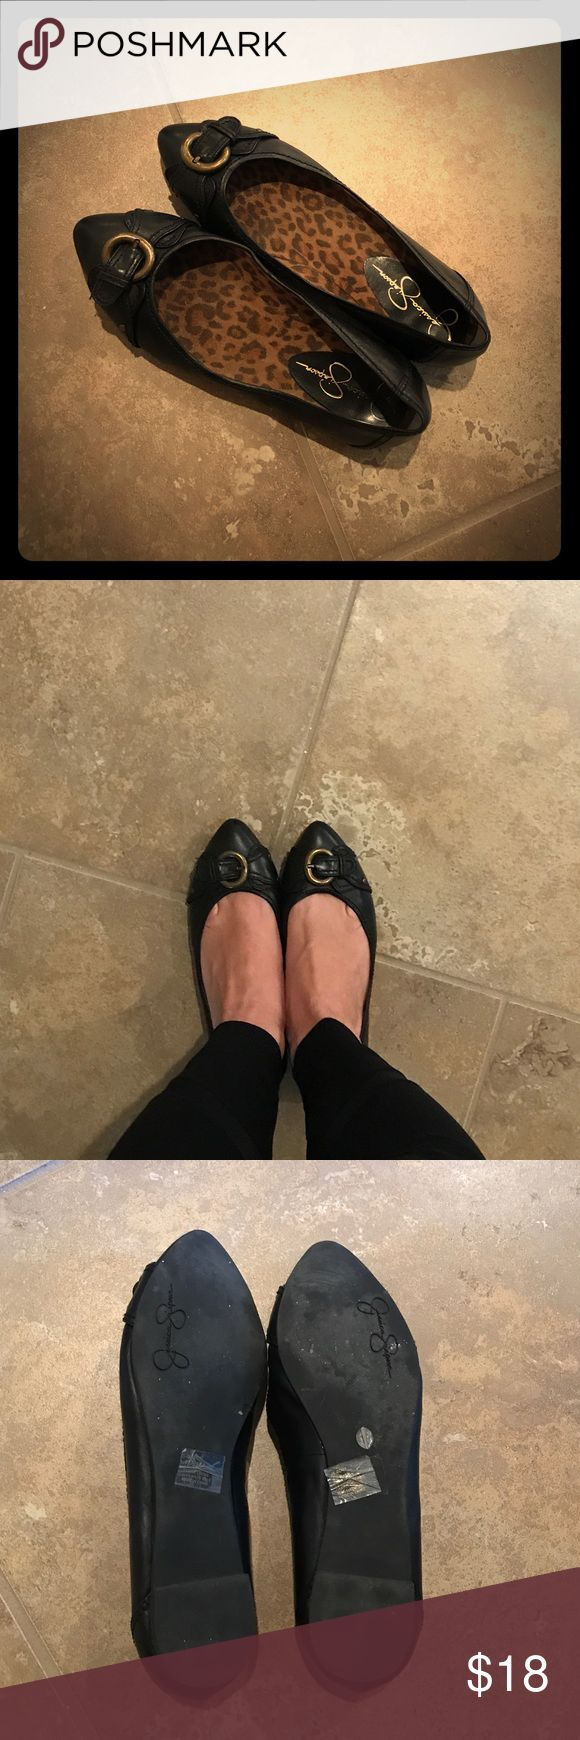 Jessica Simpson black flats Worn once Jessica Simpson black with gold buckle flats Jessica Simpson Shoes Flats & Loafers